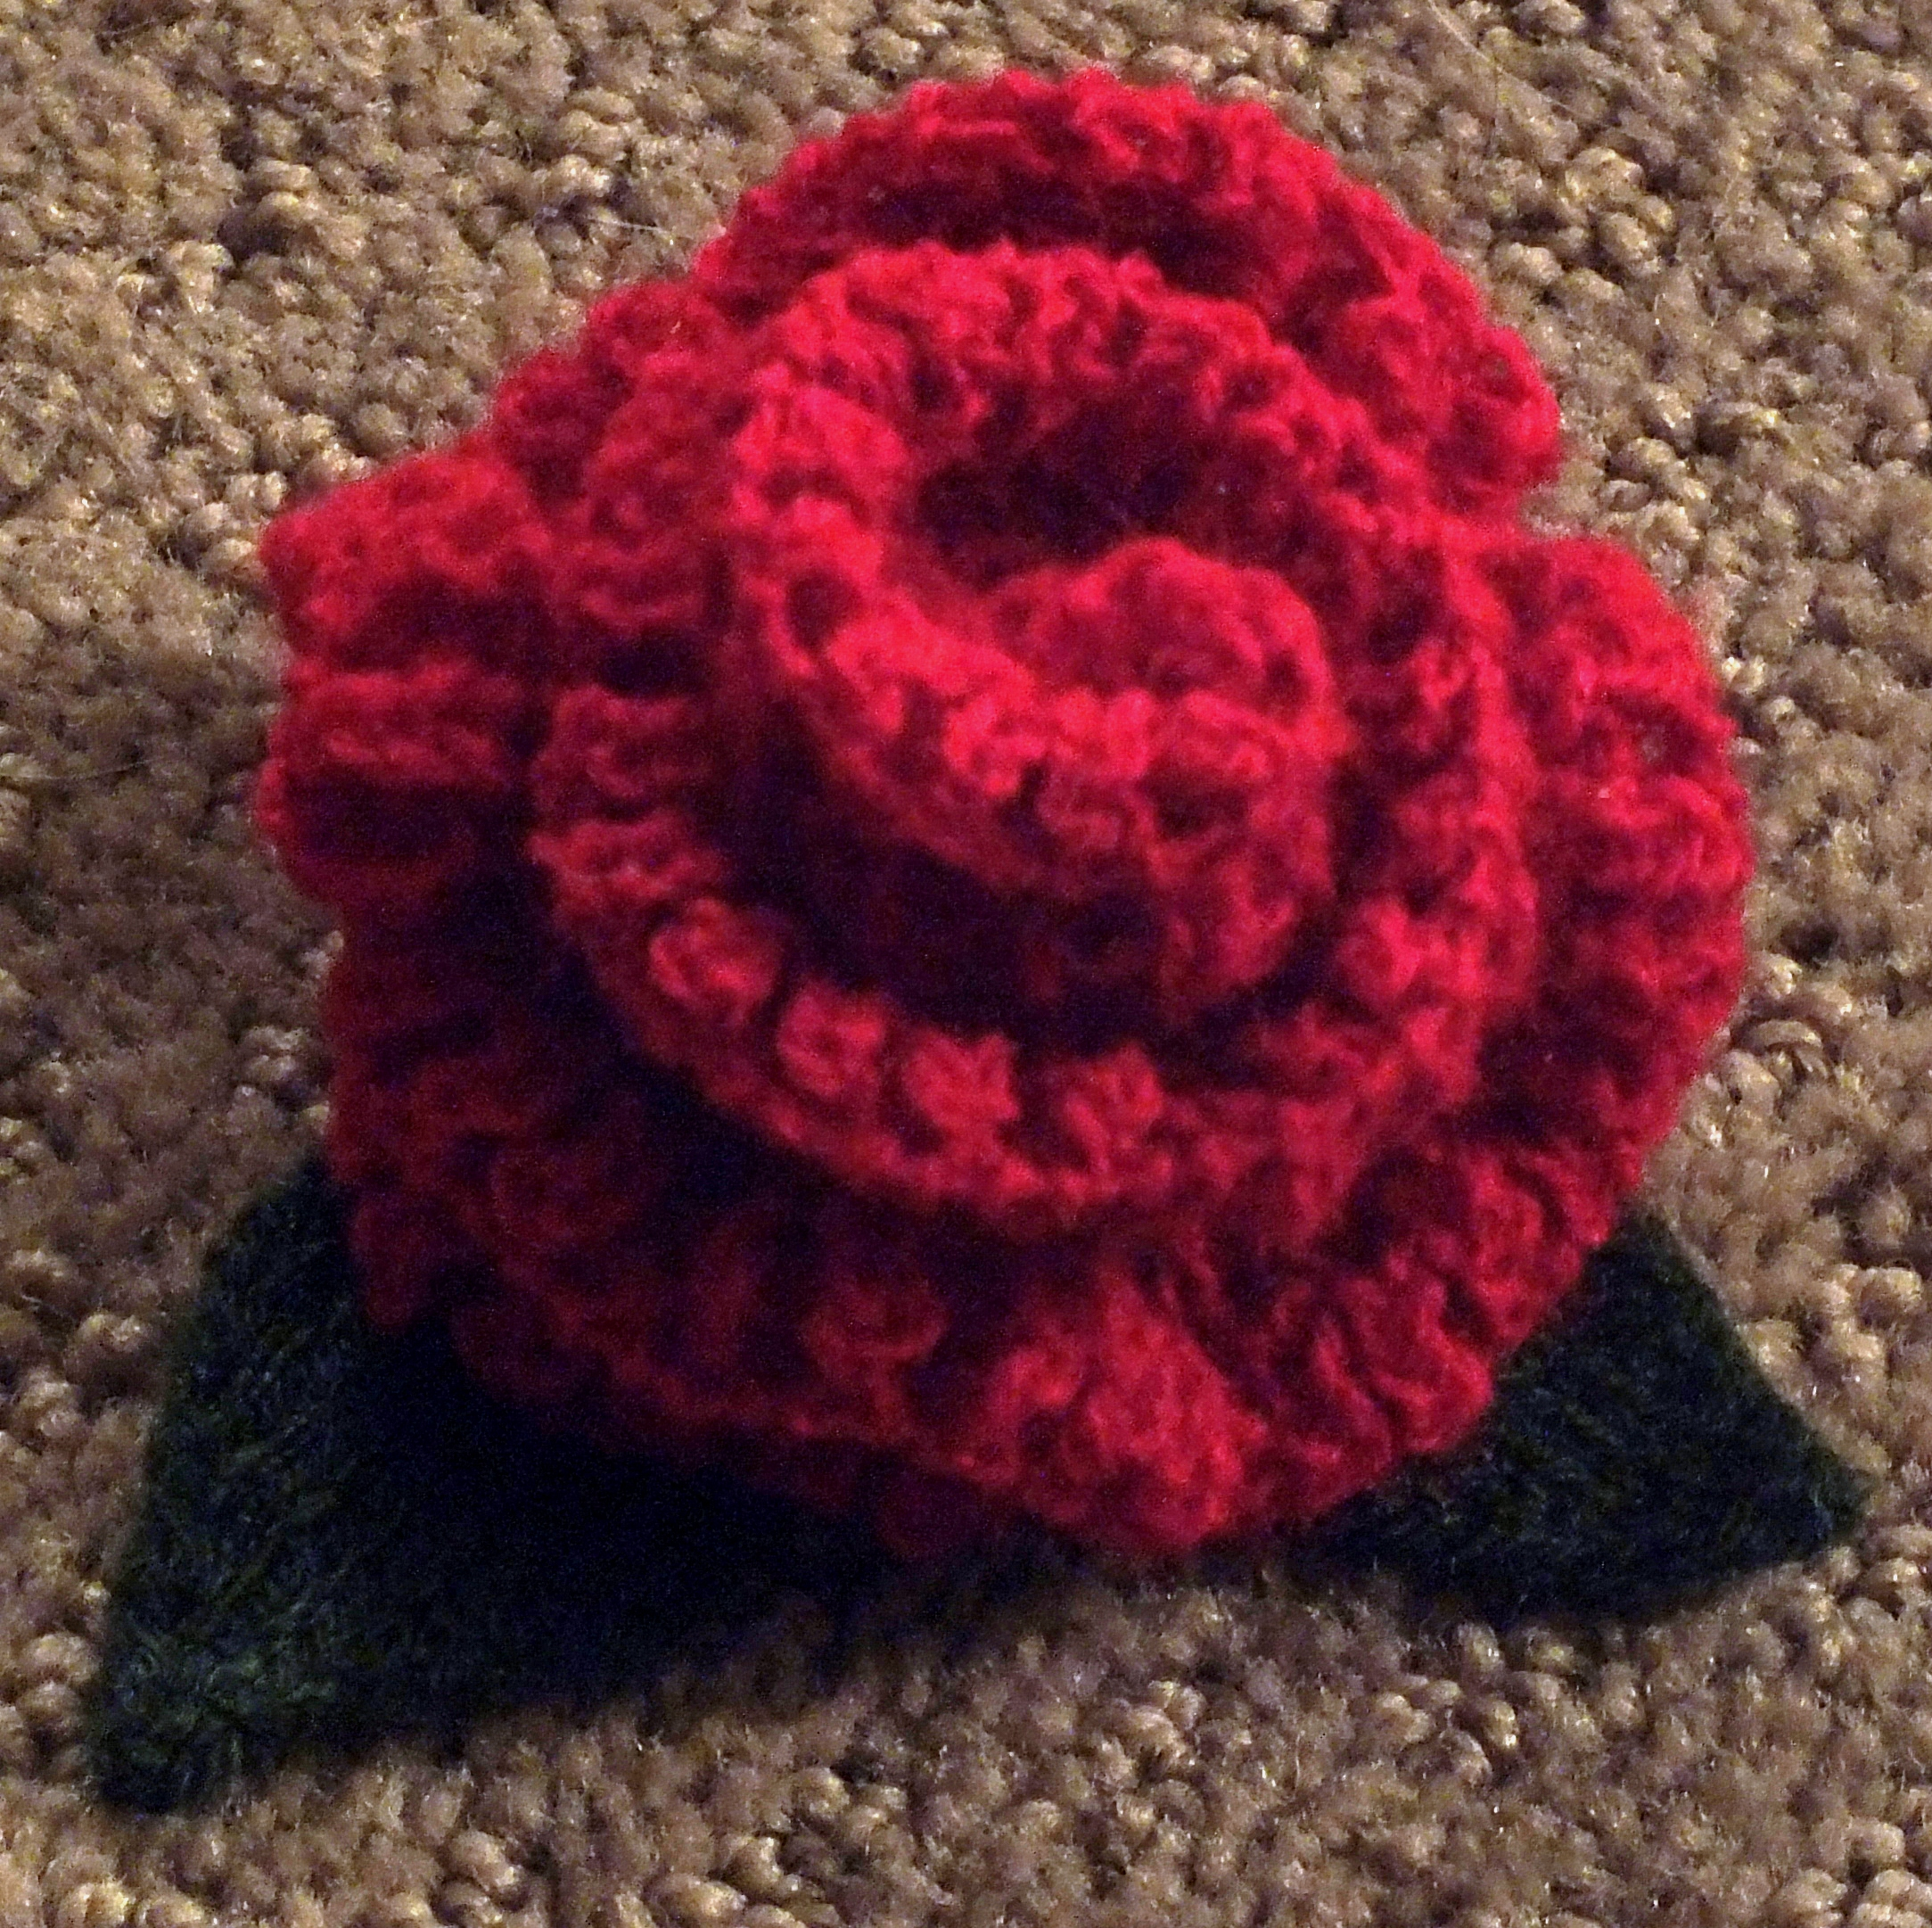 Knitting Pattern For Christmas Rose : Passap Knitted Rose Cckittenknitss Weblog